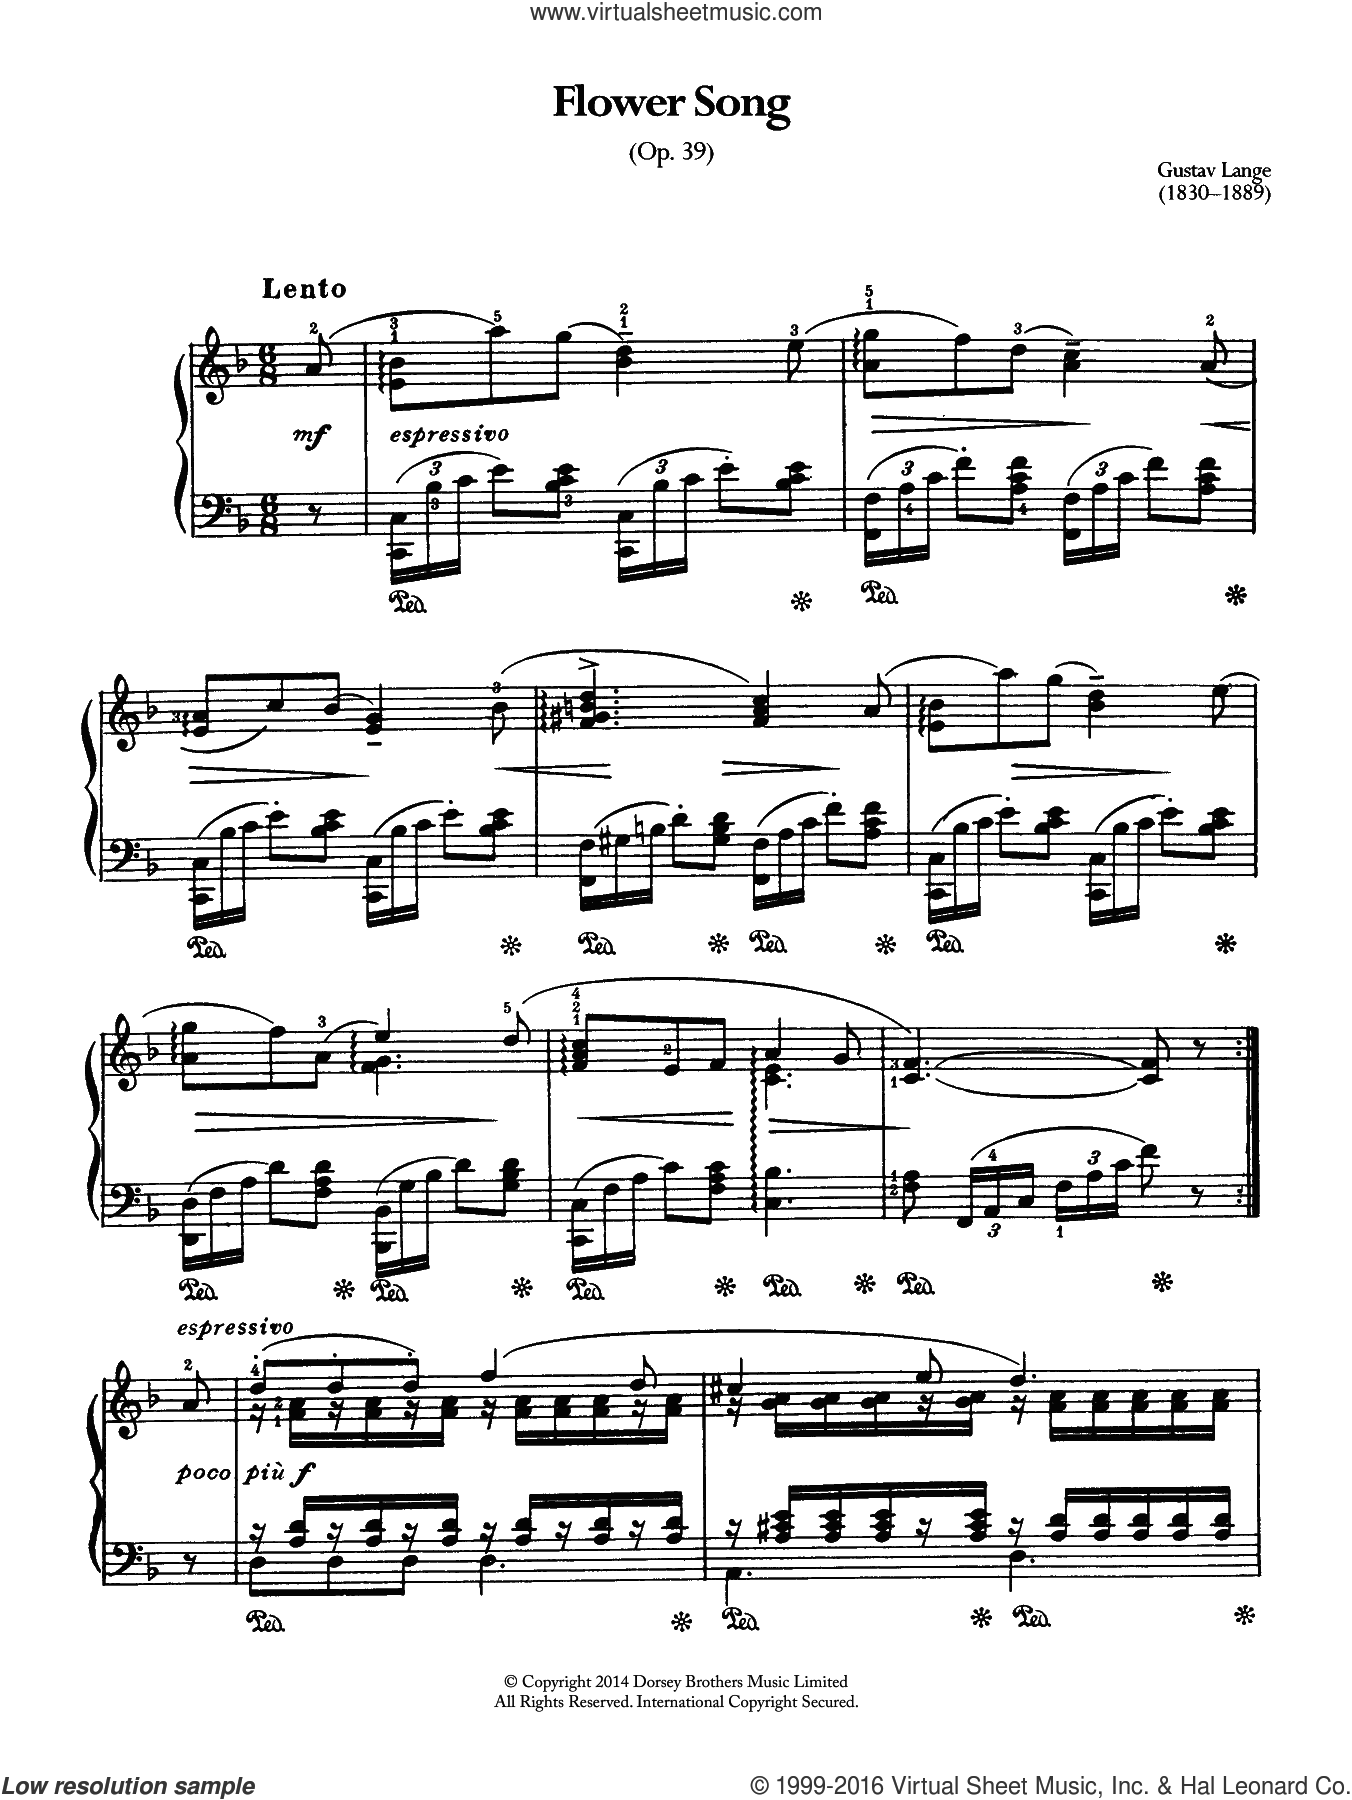 Flower Song Op.39 sheet music for piano solo by Gustav Lange, classical score, intermediate